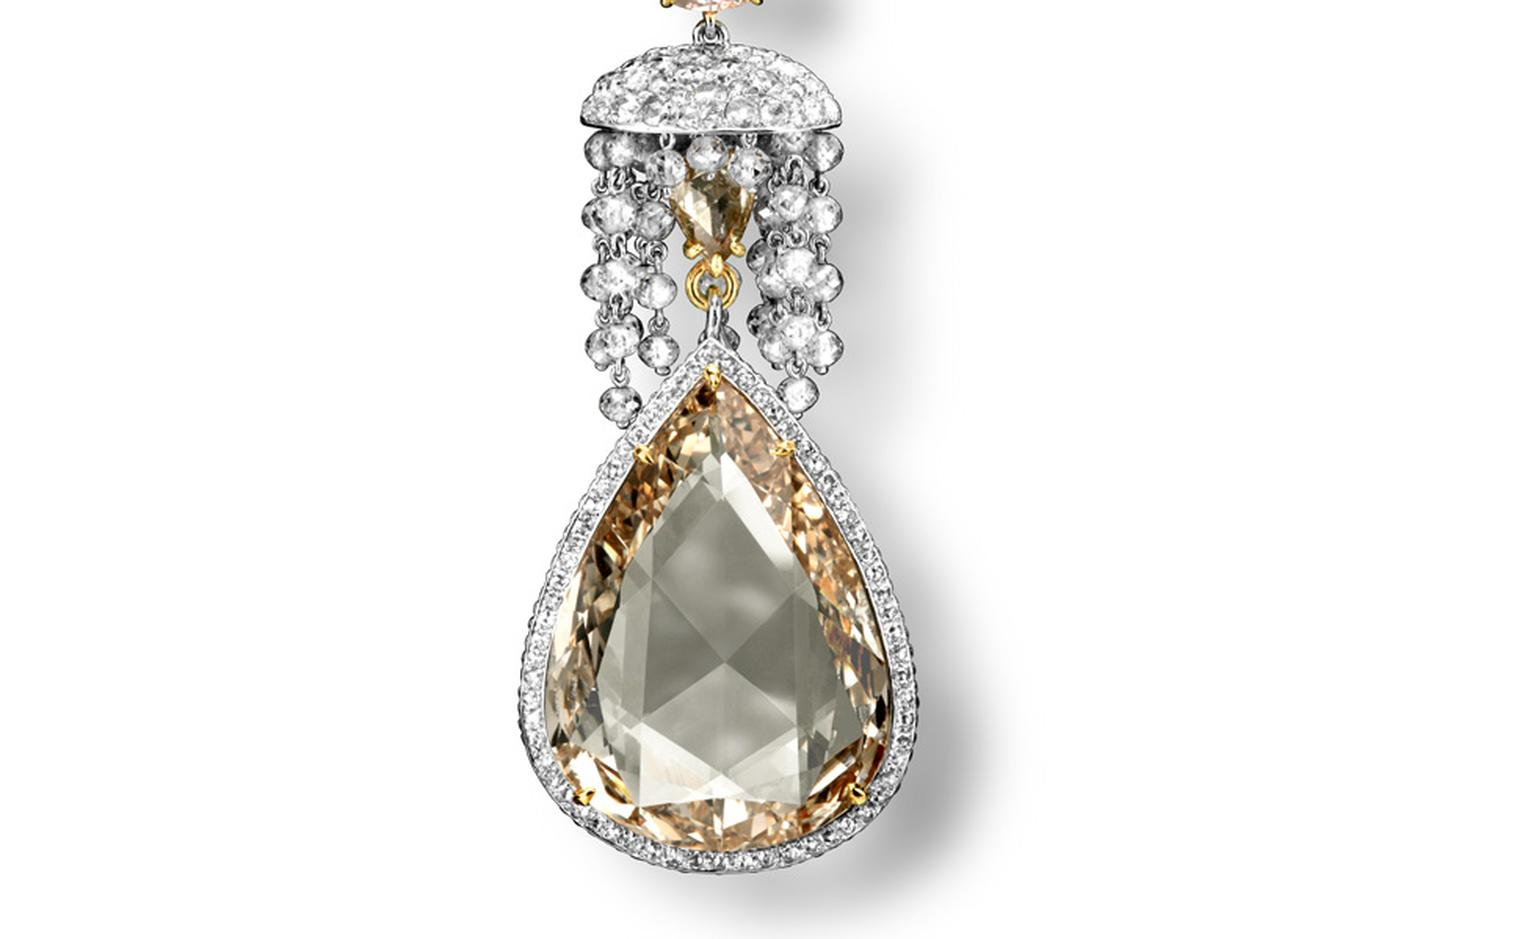 This close-up of the yellow diamond teardrop pendant how sophisticated is Carnet's use of diamond cutting techniques.